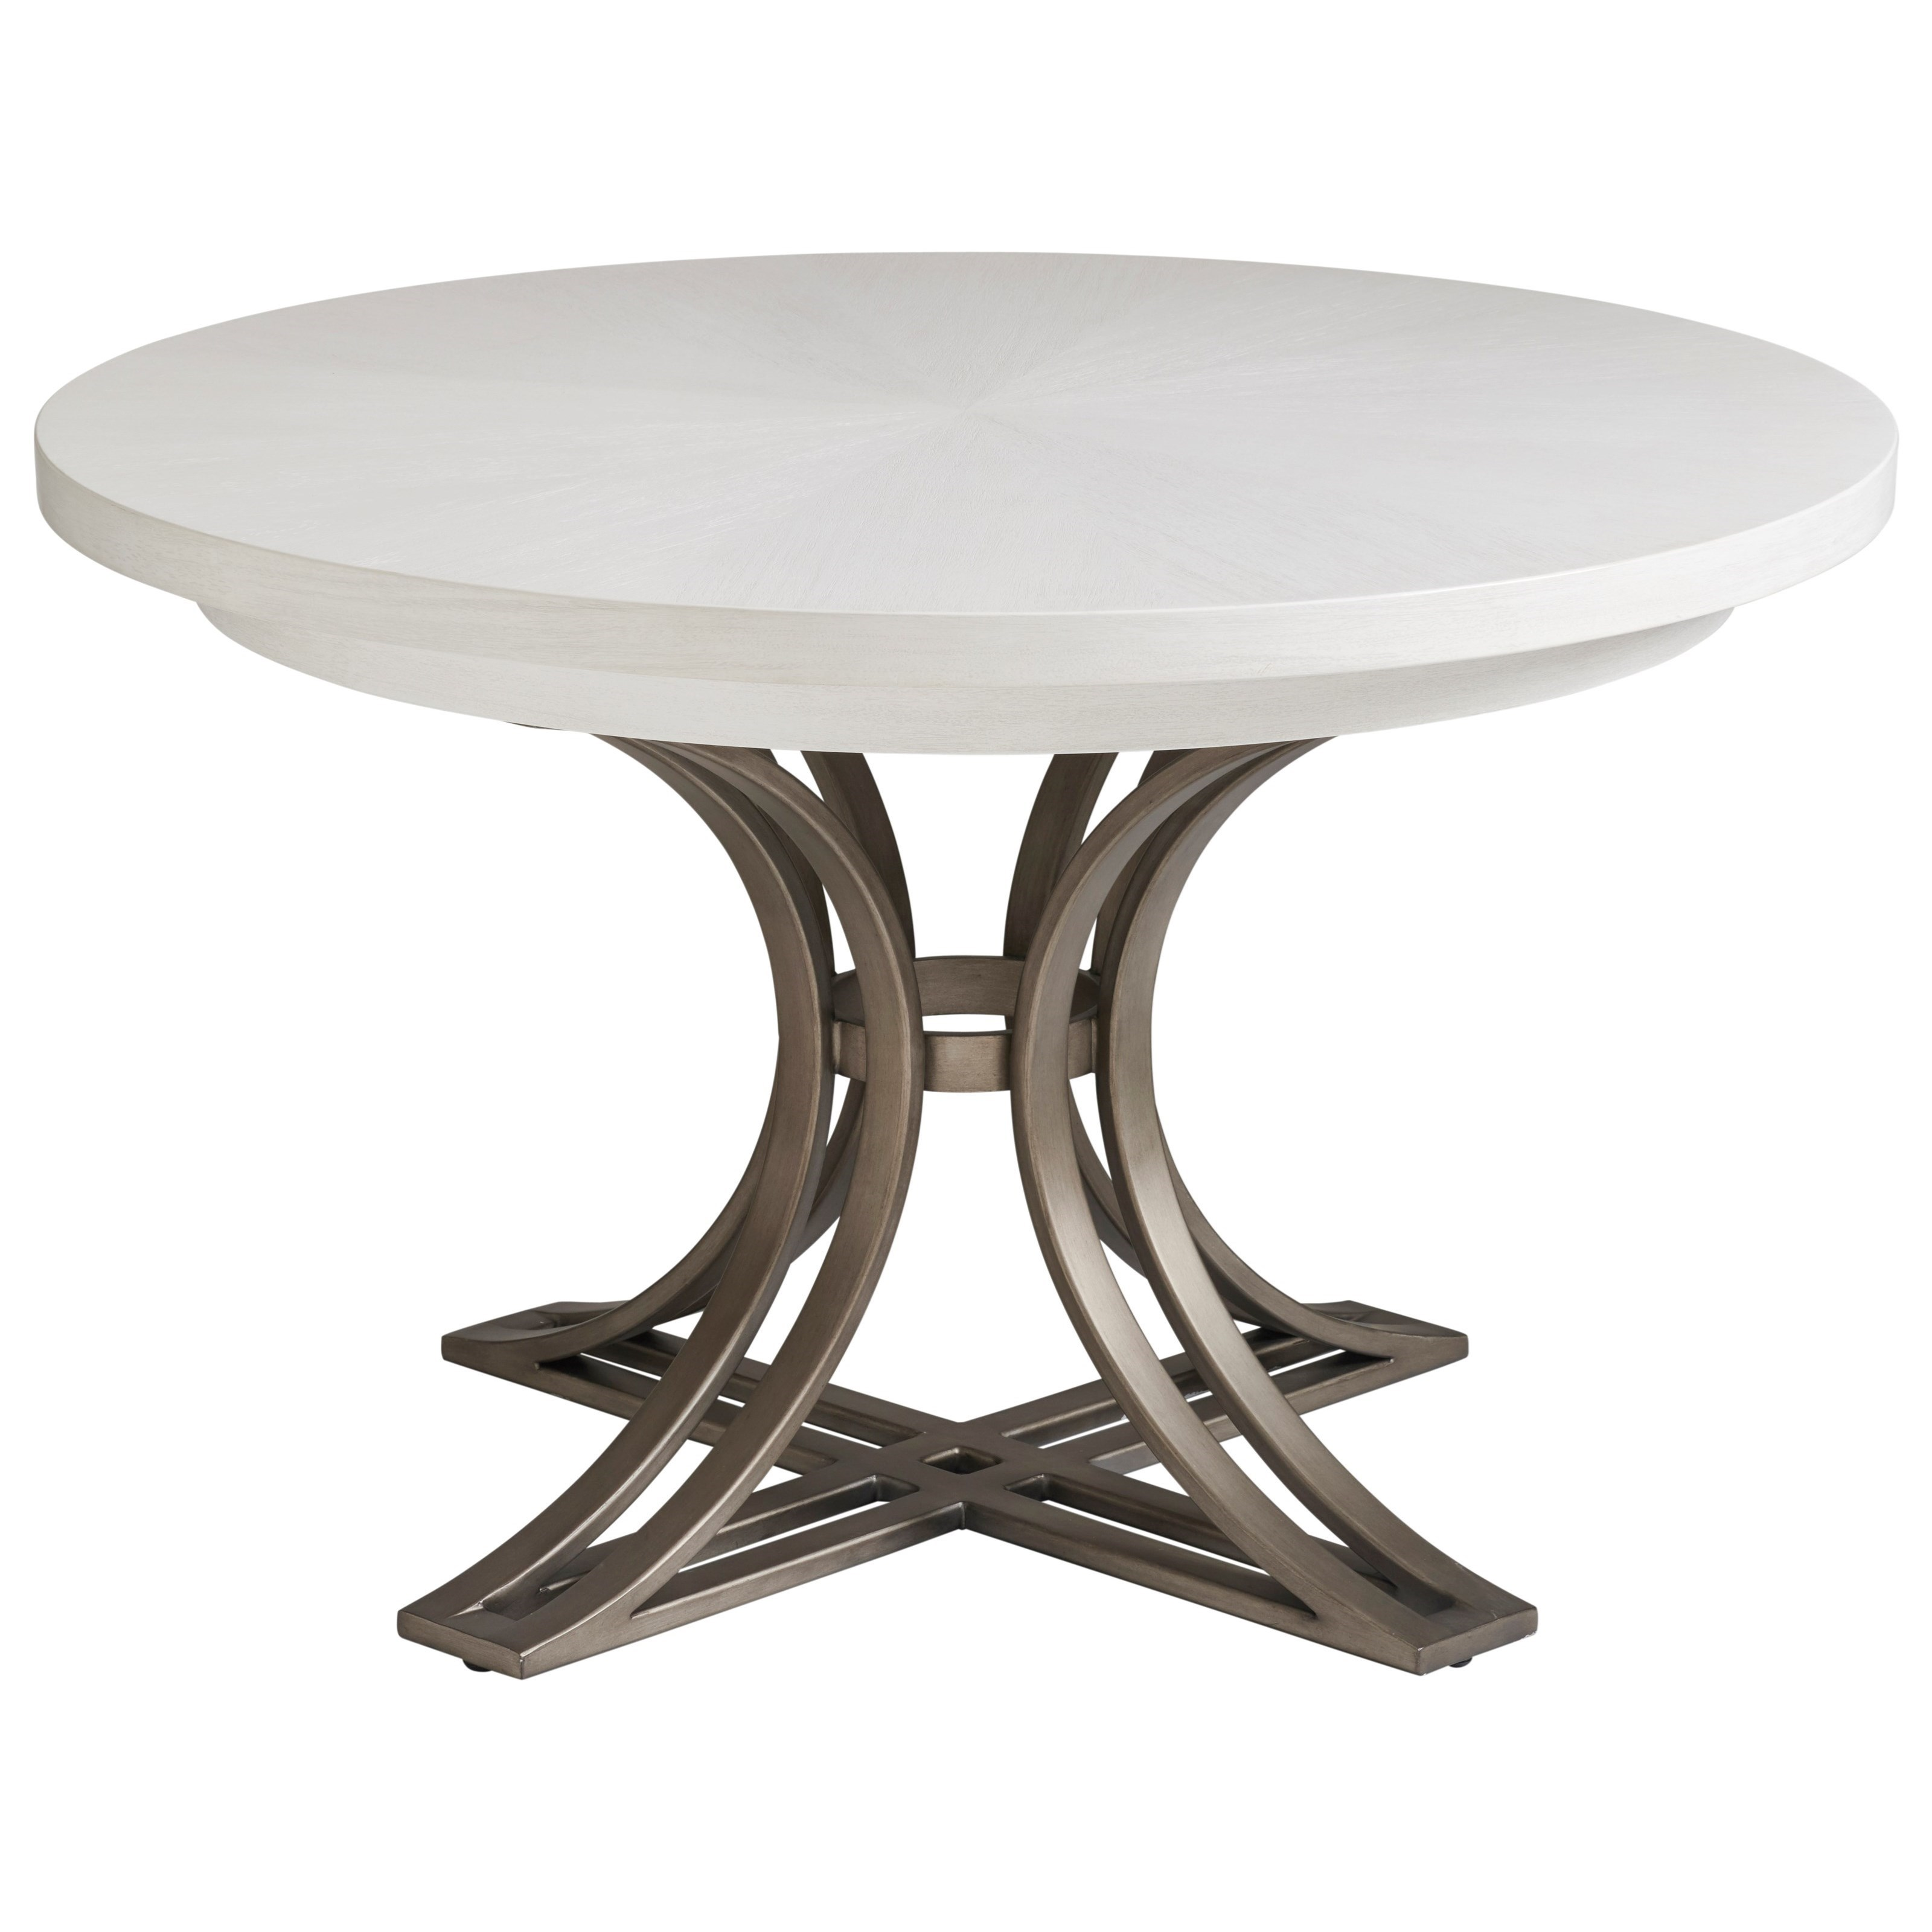 Ocean Breeze Marsh Creek Round Dining Table by Tommy Bahama Home at Baer's Furniture